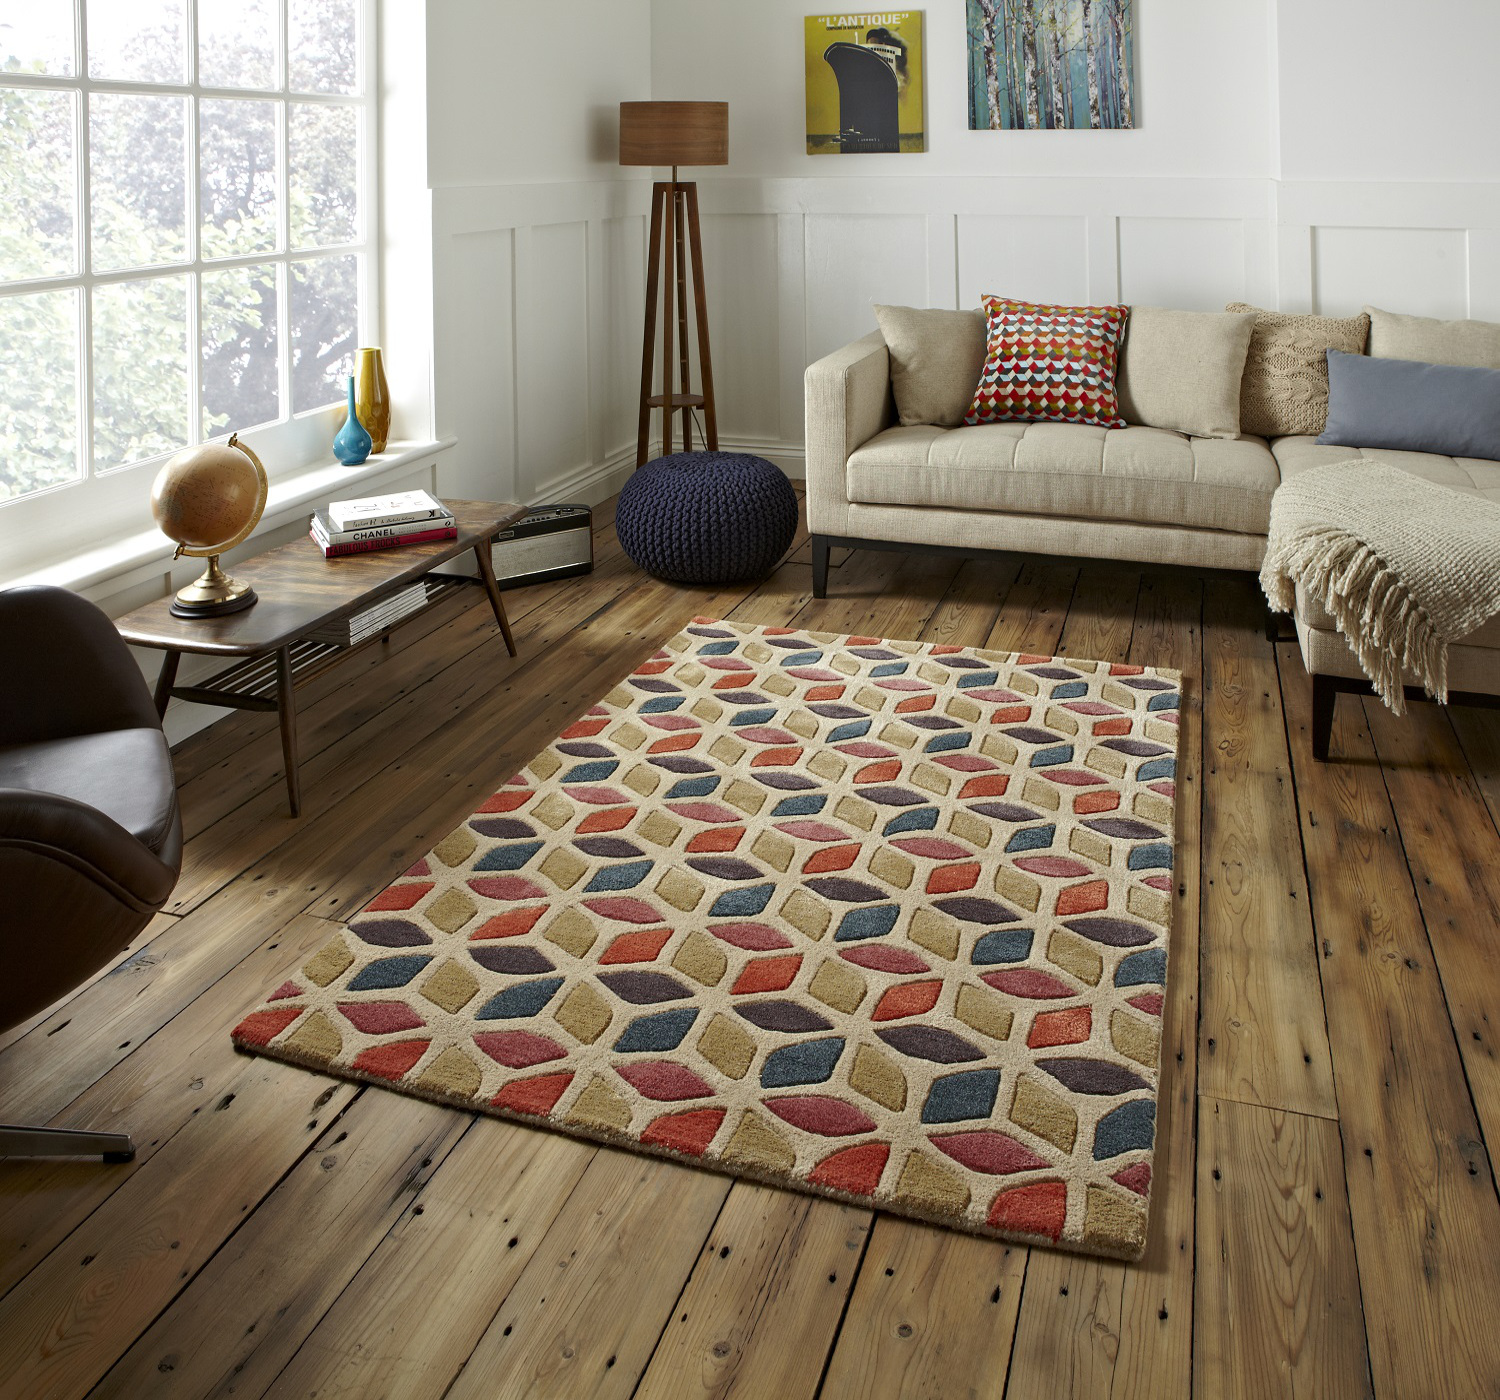 Fusion Geometric Design Hand Tufted Soft Wool Viscose Rug